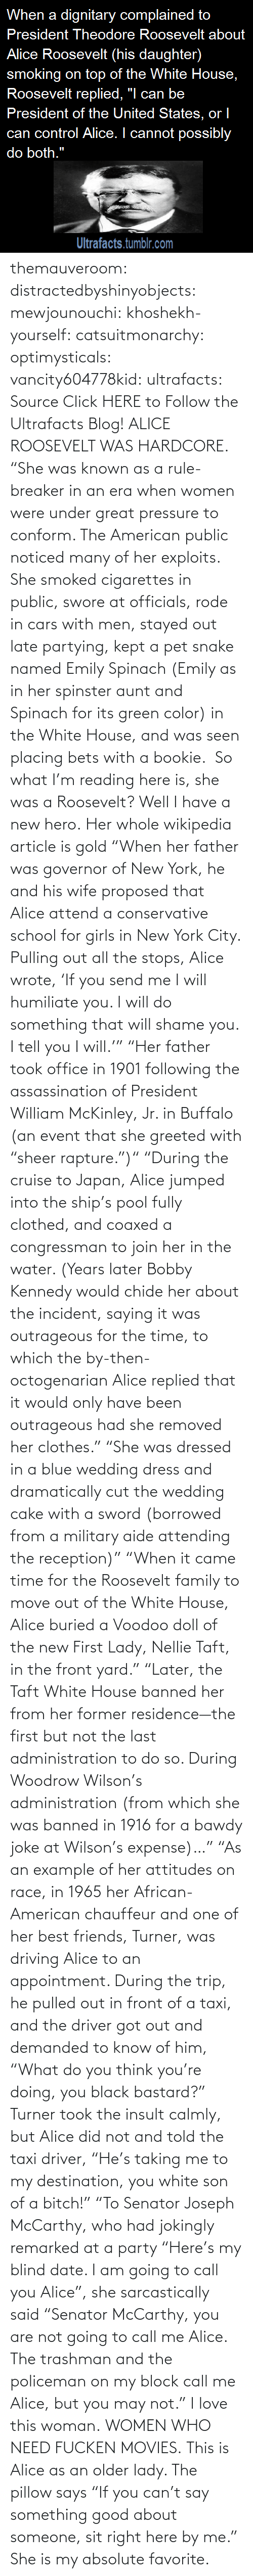 "Cruise: themauveroom: distractedbyshinyobjects:  mewjounouchi:  khoshekh-yourself:  catsuitmonarchy:  optimysticals:  vancity604778kid:  ultrafacts:     Source Click HERE to Follow the Ultrafacts Blog!     ALICE ROOSEVELT WAS HARDCORE. ""She was known as a rule-breaker in an era when women were under great pressure to conform. The American public noticed many of her exploits. She smoked cigarettes in public, swore at officials, rode in cars with men, stayed out late partying, kept a pet snake named Emily Spinach (Emily as in her spinster aunt and Spinach for its green color) in the White House, and was seen placing bets with a bookie.    So what I'm reading here is, she was a Roosevelt?  Well I have a new hero.  Her whole wikipedia article is gold ""When her father was governor of New York, he and his wife proposed that Alice attend a conservative school for girls in New York City. Pulling out all the stops, Alice wrote, 'If you send me I will humiliate you. I will do something that will shame you. I tell you I will.'"" ""Her father took office in 1901 following the assassination of President William McKinley, Jr. in Buffalo (an event that she greeted with ""sheer rapture."")"" ""During the cruise to Japan, Alice jumped into the ship's pool fully clothed, and coaxed a congressman to join her in the water. (Years later Bobby Kennedy would chide her about the incident, saying it was outrageous for the time, to which the by-then-octogenarian Alice replied that it would only have been outrageous had she removed her clothes."" ""She was dressed in a blue wedding dress and dramatically cut the wedding cake with a sword (borrowed from a military aide attending the reception)"" ""When it came time for the Roosevelt family to move out of the White House, Alice buried a Voodoo doll of the new First Lady, Nellie Taft, in the front yard."" ""Later, the Taft White House banned her from her former residence—the first but not the last administration to do so. During Woodrow Wilson's administration (from which she was banned in 1916 for a bawdy joke at Wilson's expense)…"" ""As an example of her attitudes on race, in 1965 her African-American chauffeur and one of her best friends, Turner, was driving Alice to an appointment. During the trip, he pulled out in front of a taxi, and the driver got out and demanded to know of him, ""What do you think you're doing, you black bastard?"" Turner took the insult calmly, but Alice did not and told the taxi driver, ""He's taking me to my destination, you white son of a bitch!"" ""To Senator Joseph McCarthy, who had jokingly remarked at a party ""Here's my blind date. I am going to call you Alice"", she sarcastically said ""Senator McCarthy, you are not going to call me Alice. The trashman and the policeman on my block call me Alice, but you may not.""  I love this woman.  WOMEN WHO NEED FUCKEN MOVIES.   This is Alice as an older lady. The pillow says ""If you can't say something good about someone, sit right here by me.""  She is my absolute favorite."